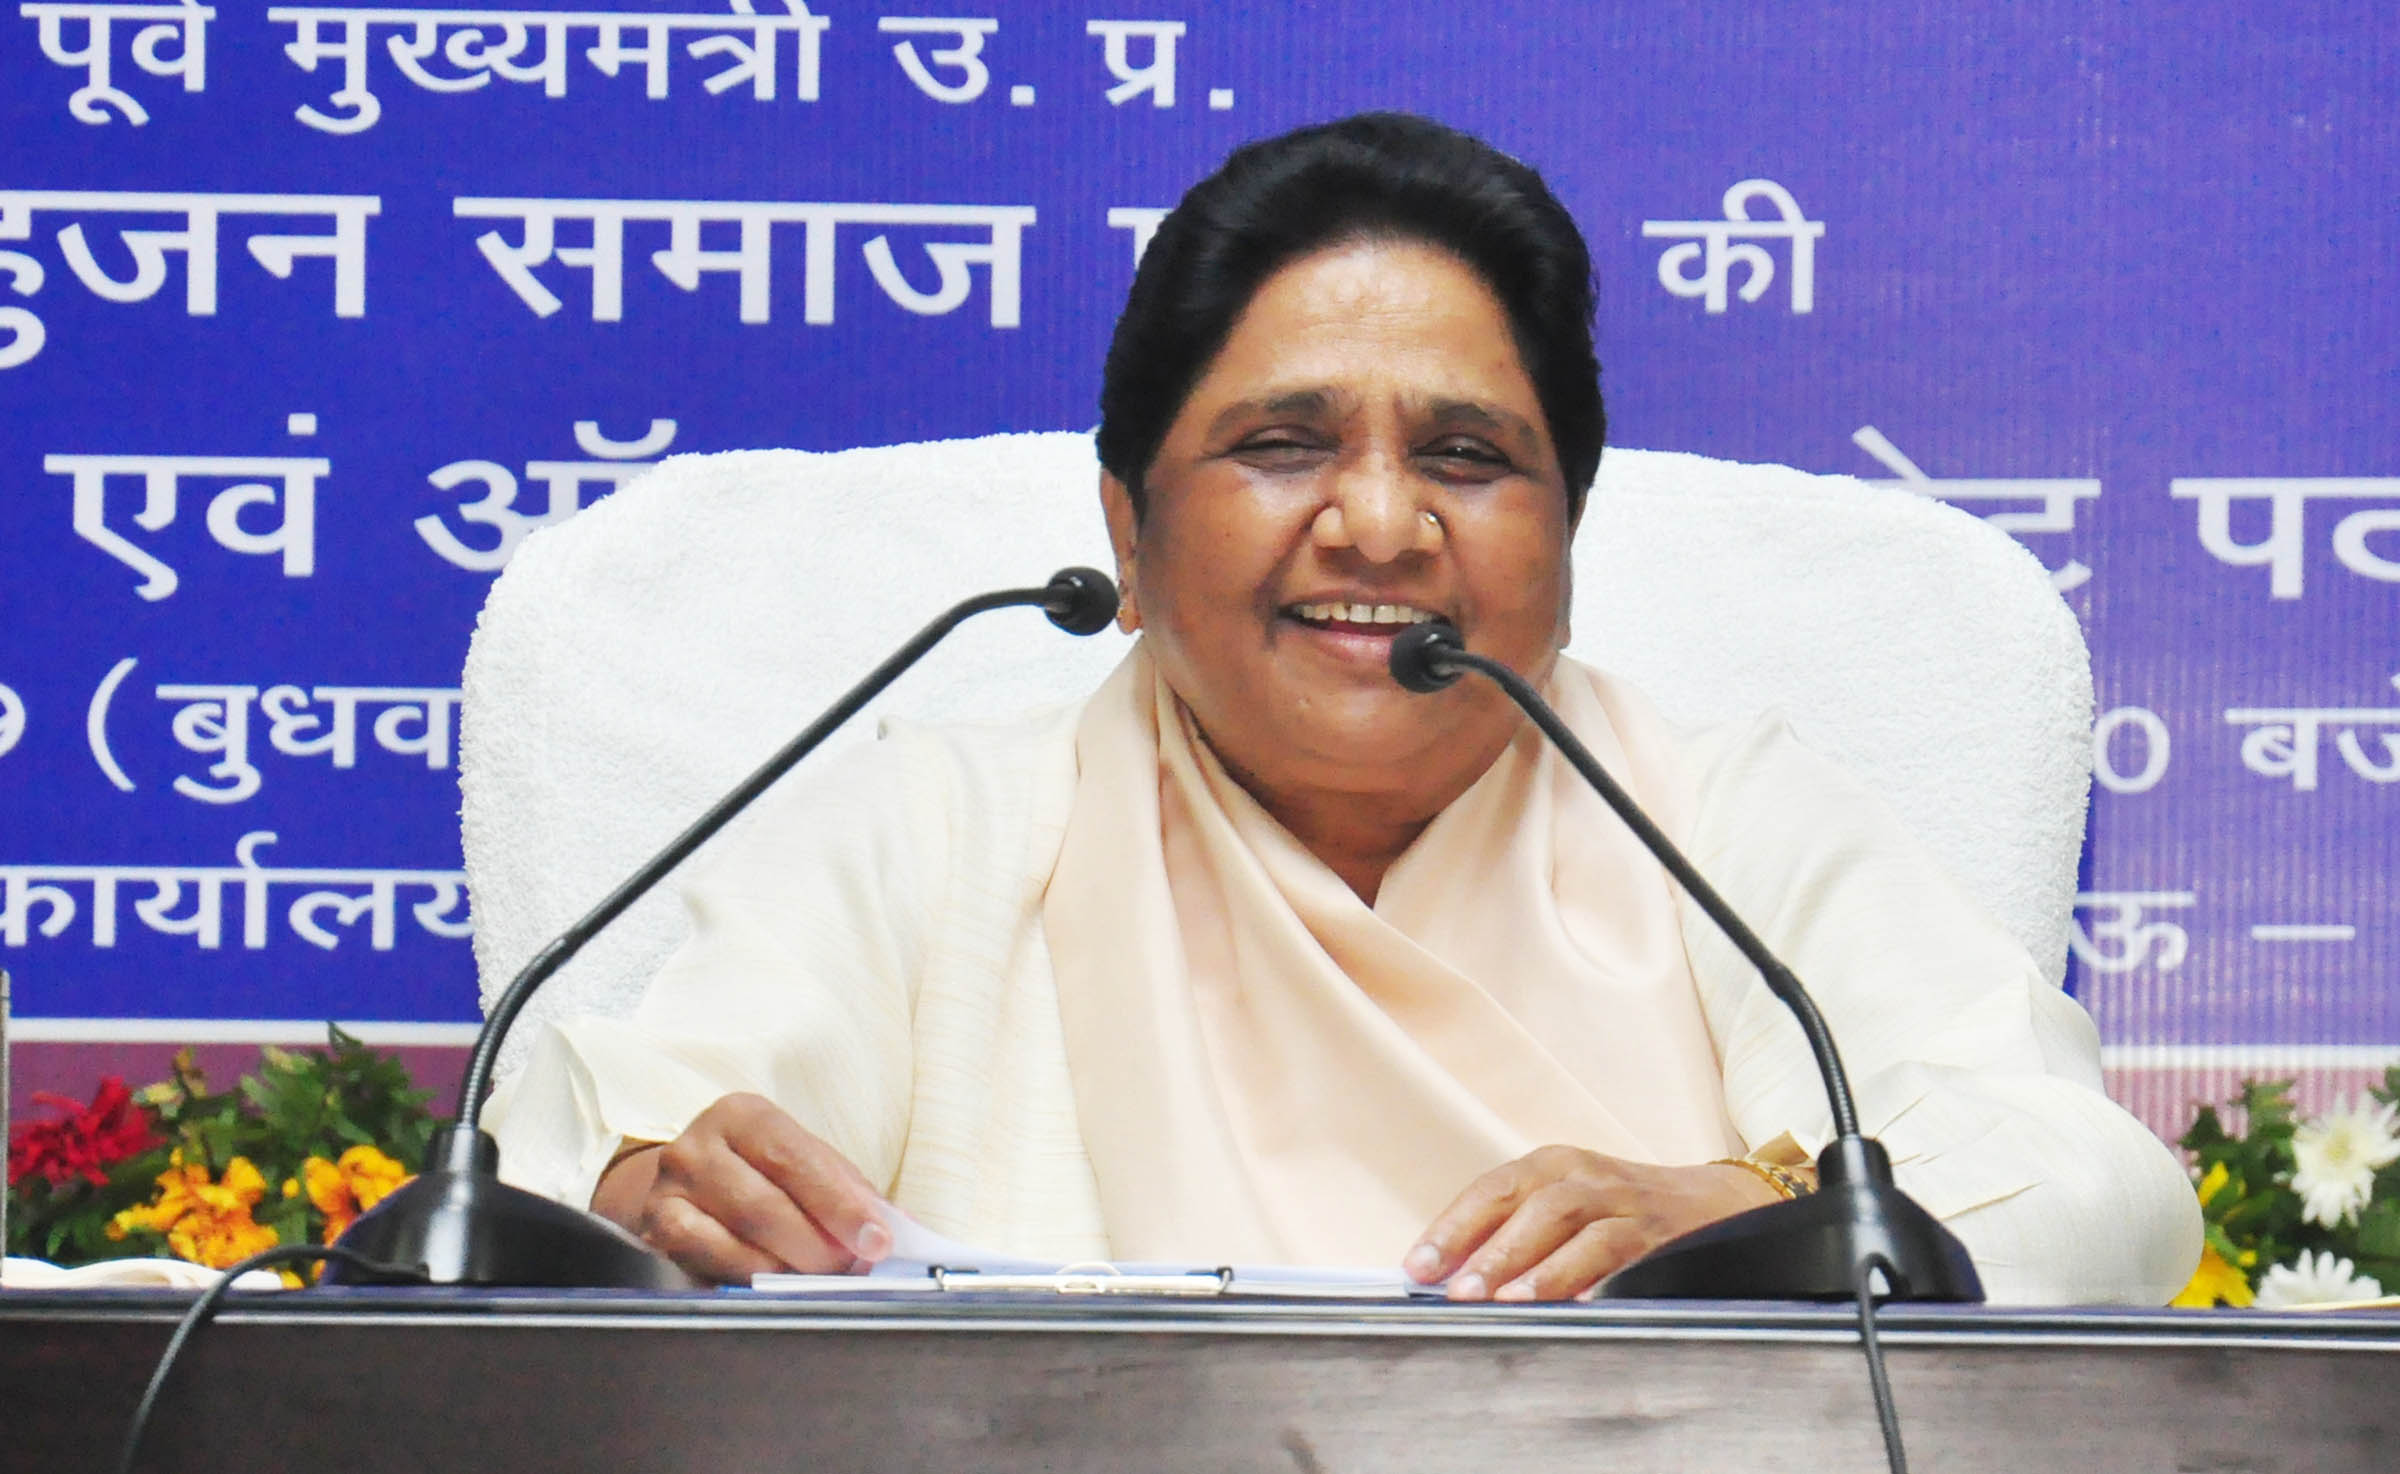 Bahujan Samaj Party supremo Mayawati addressing Central Executive Committee and All India-State Office Bearers before re-elected as party president at the BSP office in Lucknow on Wednesday. (UNI)